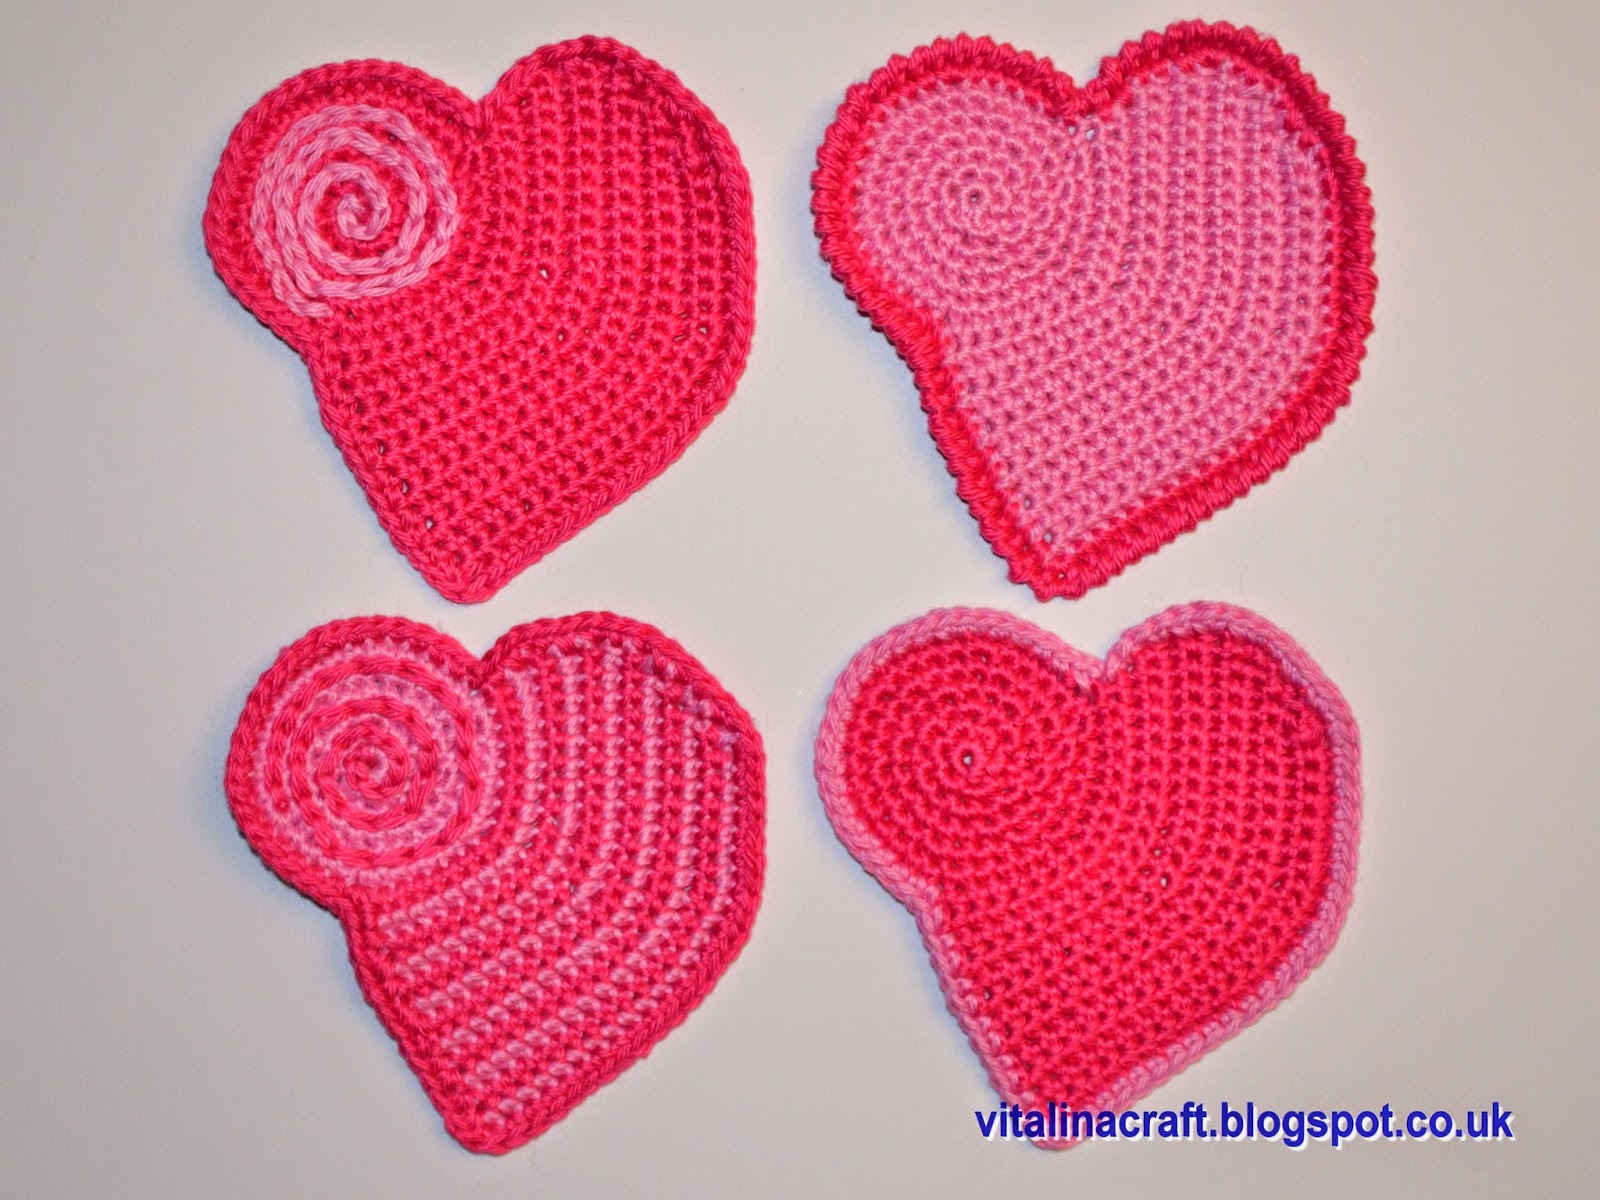 Crochet coasters for St Valentine Day ViTalina Craft